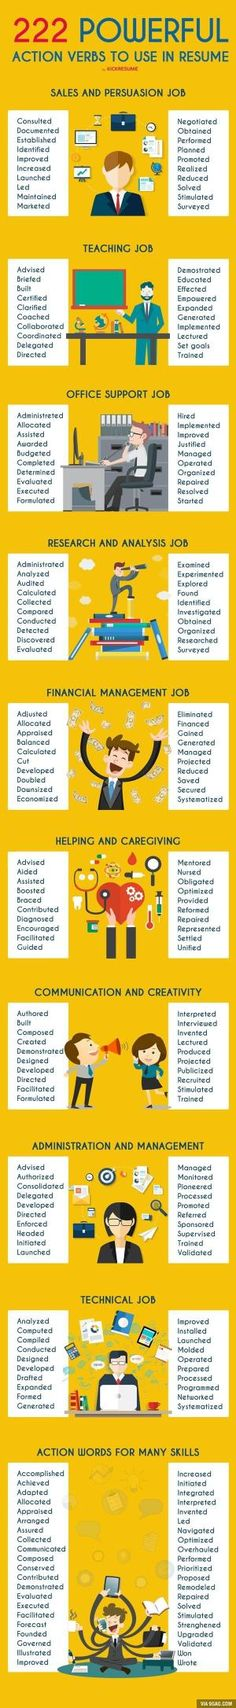 Action verbs for cv writing for next time I revamp my resume - strong action words for resume